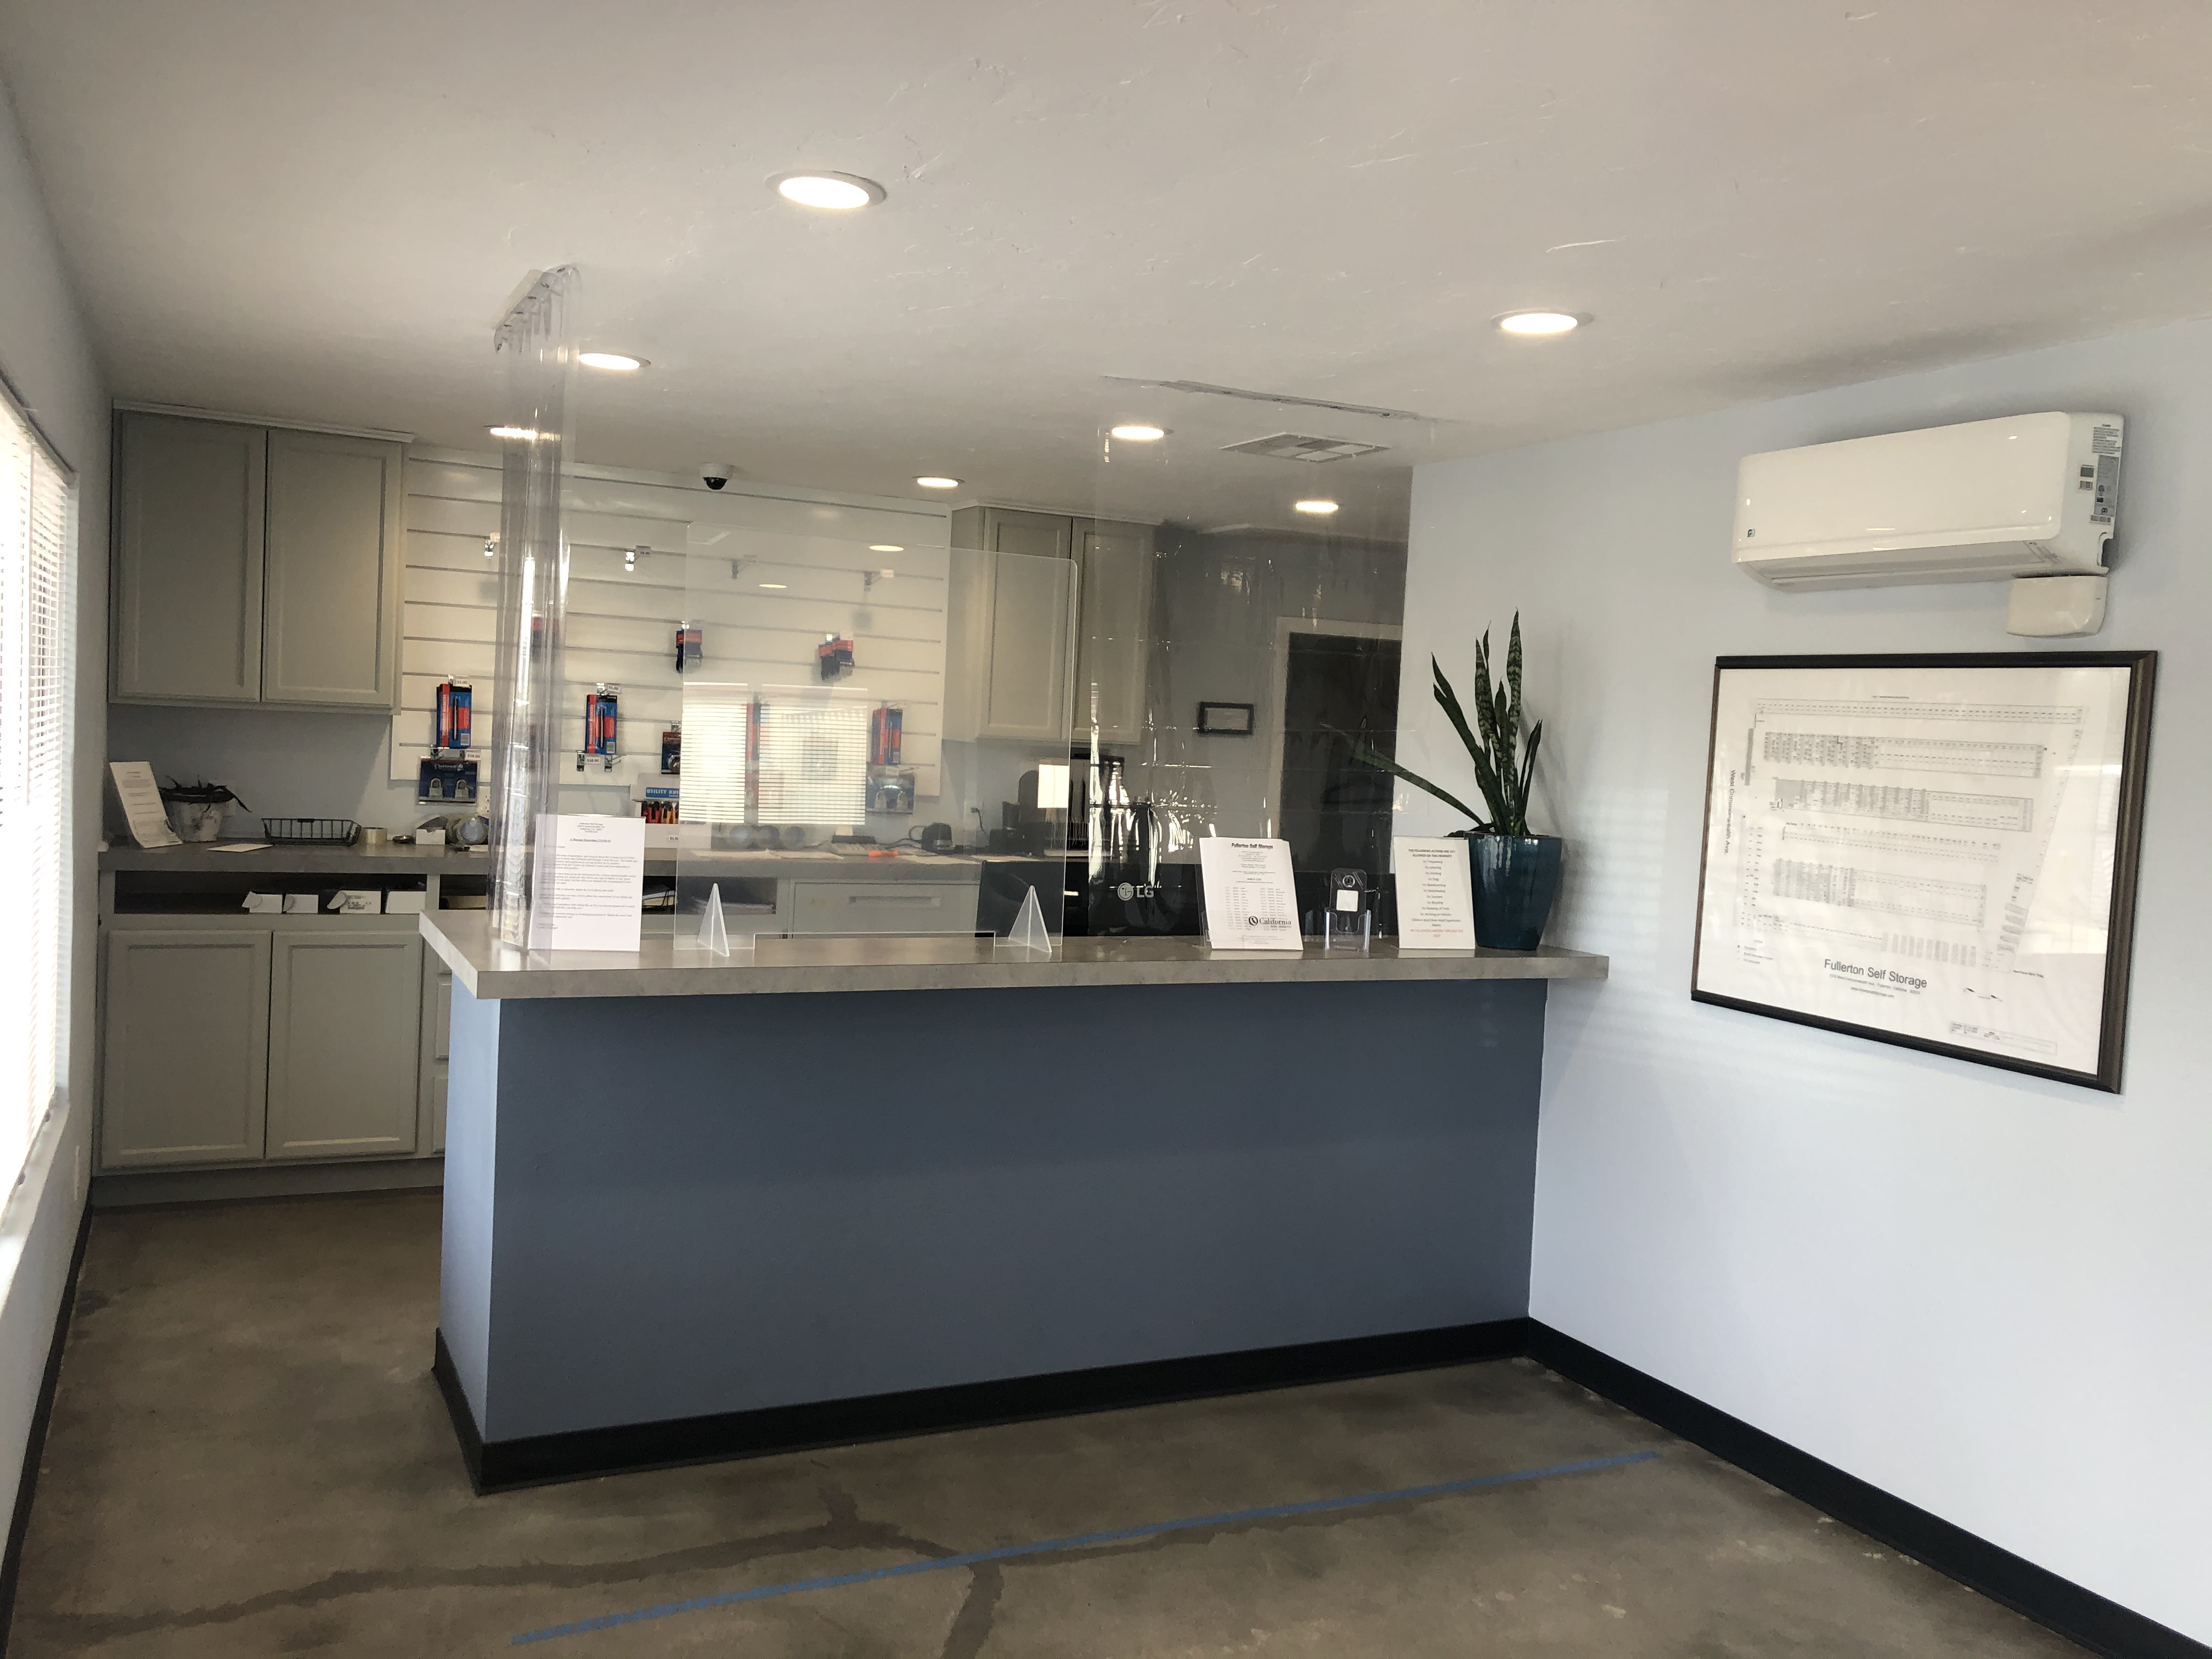 front office and desk with tall, clear plastic divider